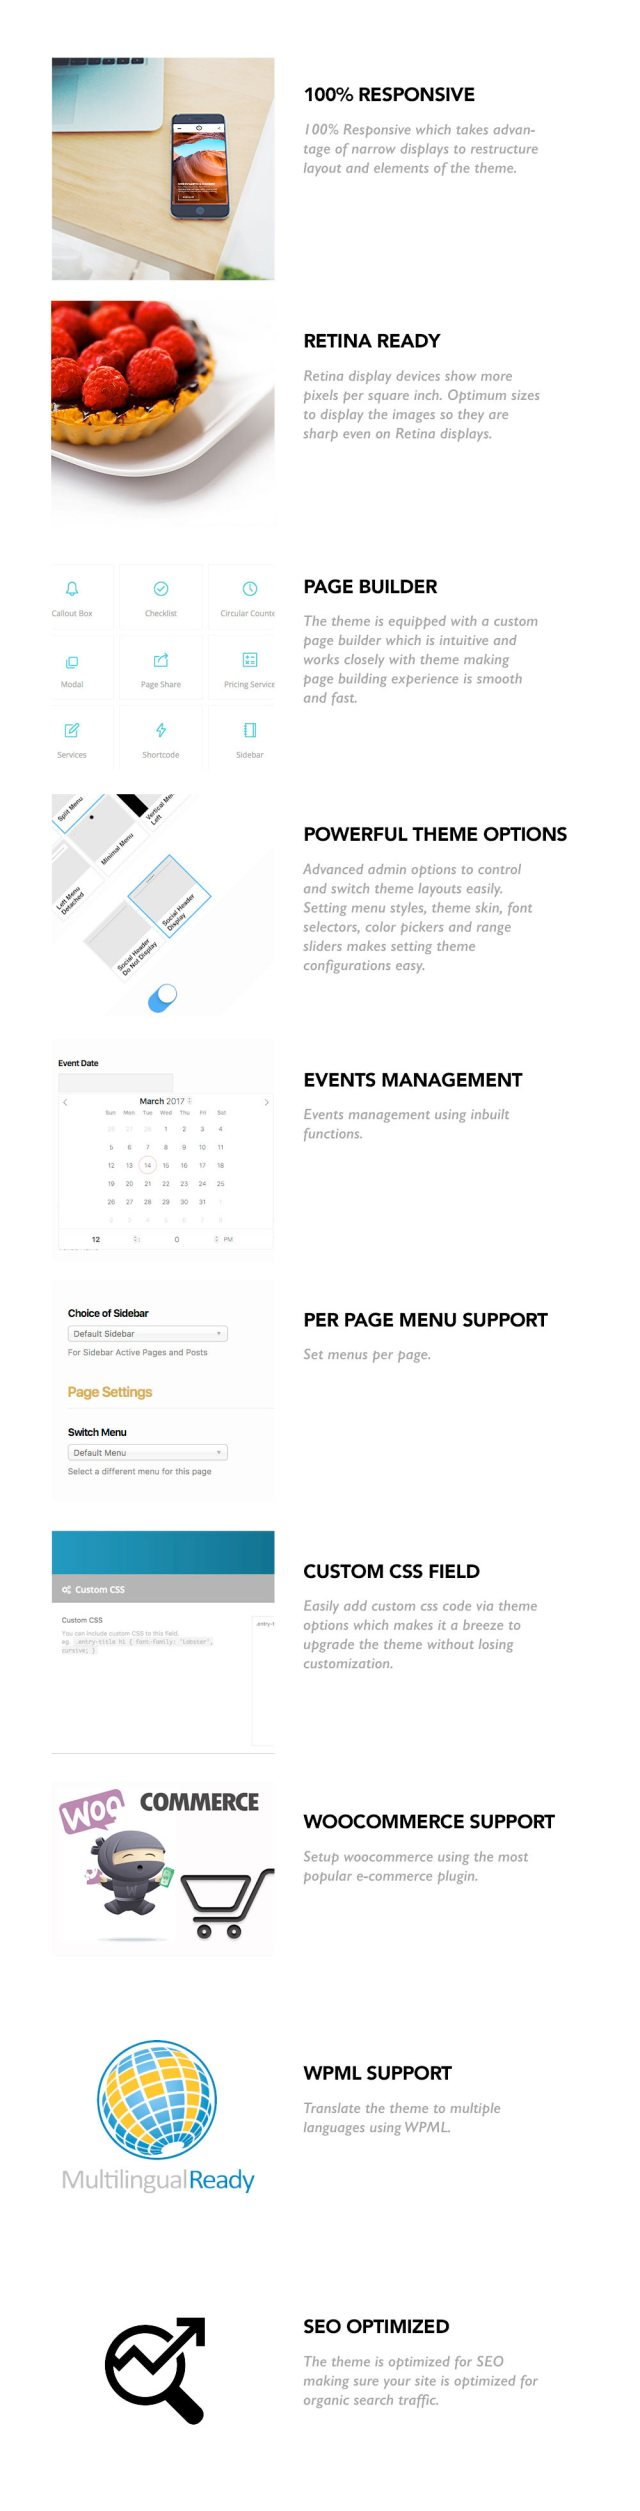 Plumeria Restaurant and Cafe Theme for WordPress 3